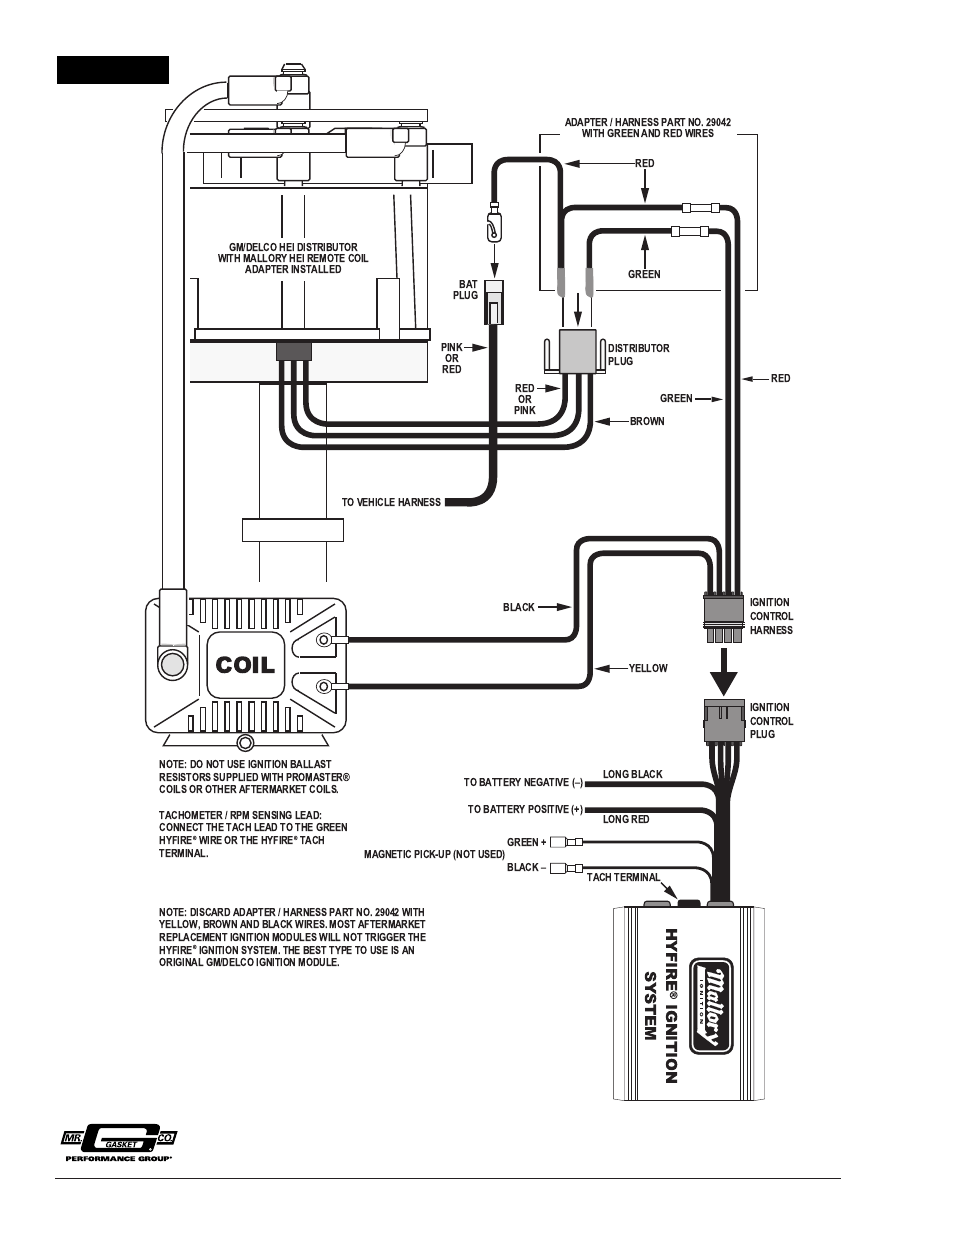 Mallory Wiring Diagram | Wiring Schematic Diagram - 26.beamsys.co on inboard outboard motor diagram, mallory high fire wiring-diagram, basic car electrical system diagram, electronic ignition diagram, mallory dist wiring-diagram, fairbanks morse magneto diagram, omc ignition switch diagram, mallory carburetor diagram, msd 6al diagram, atwood rv water heater diagram,